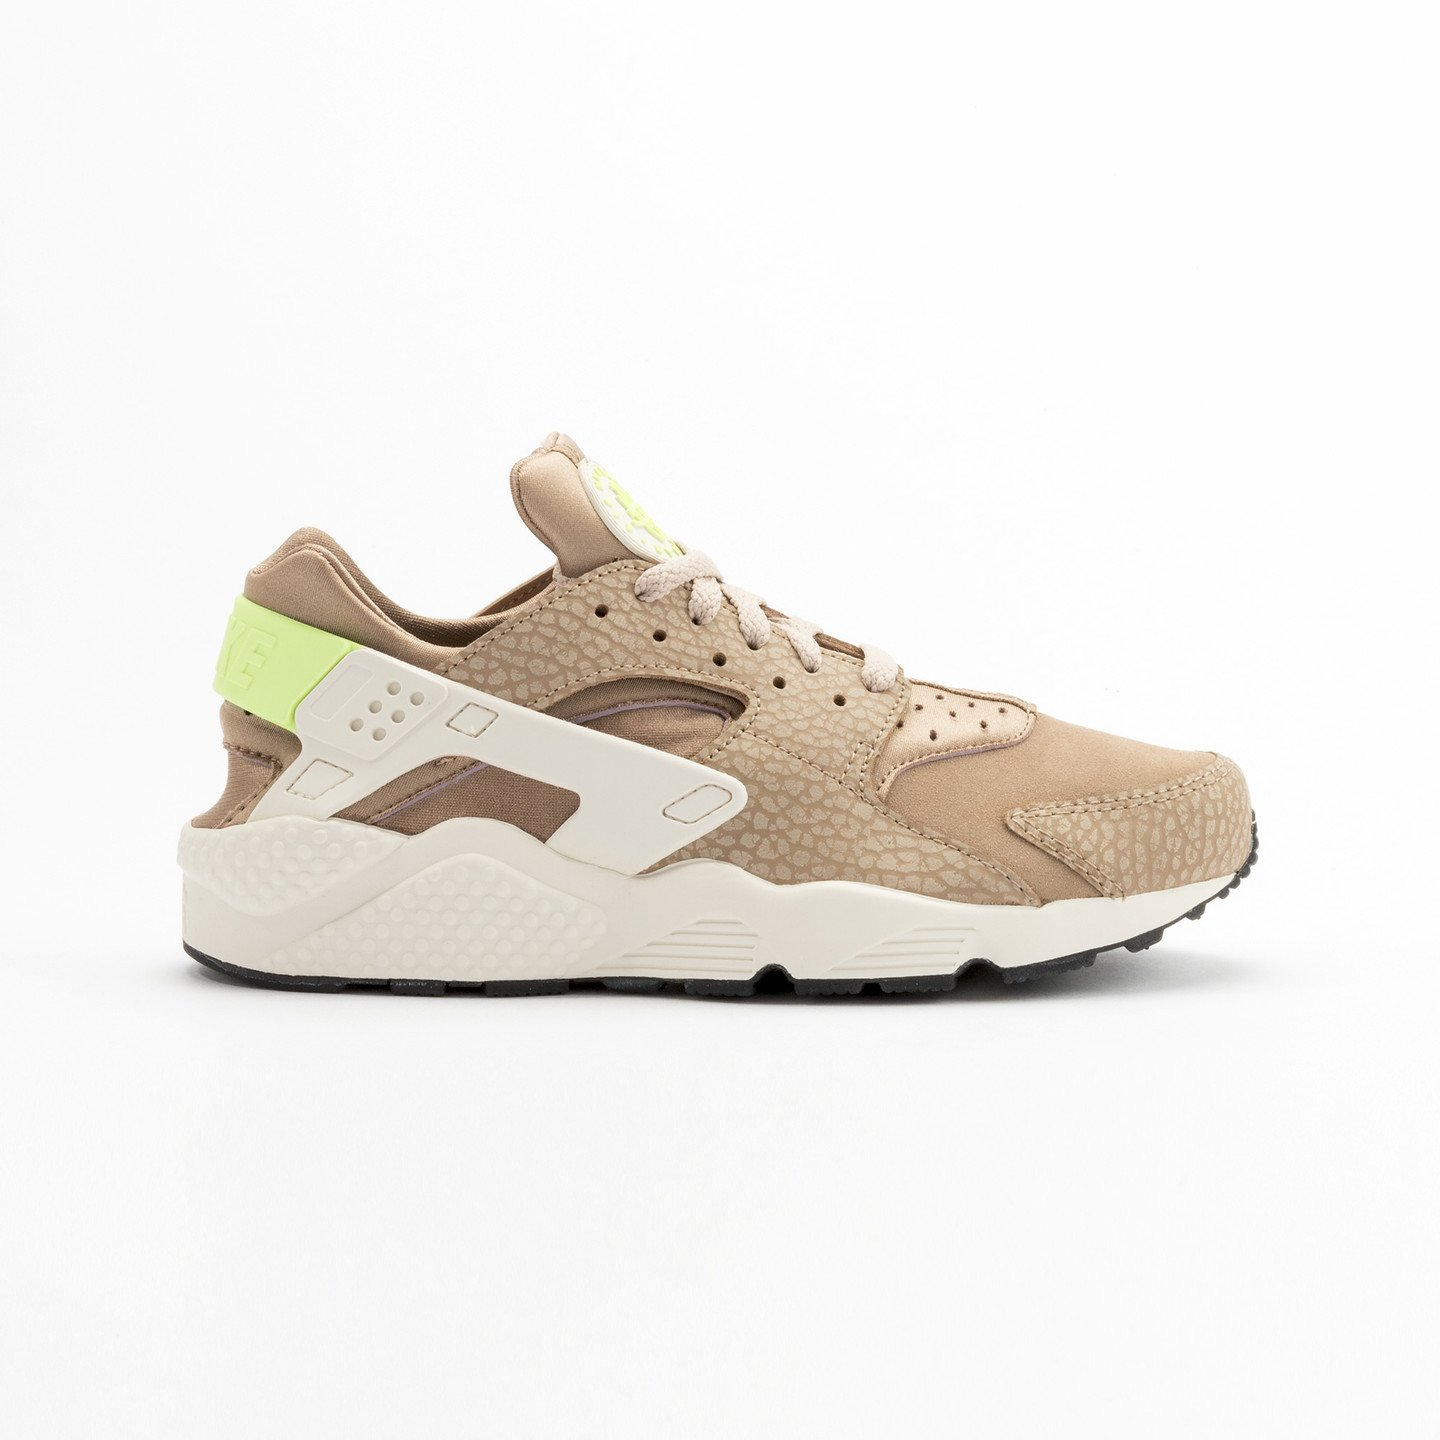 Nike Air Huarache Run Premium Desert Camo / Sea Glass / Ghost Green 704830-203-44